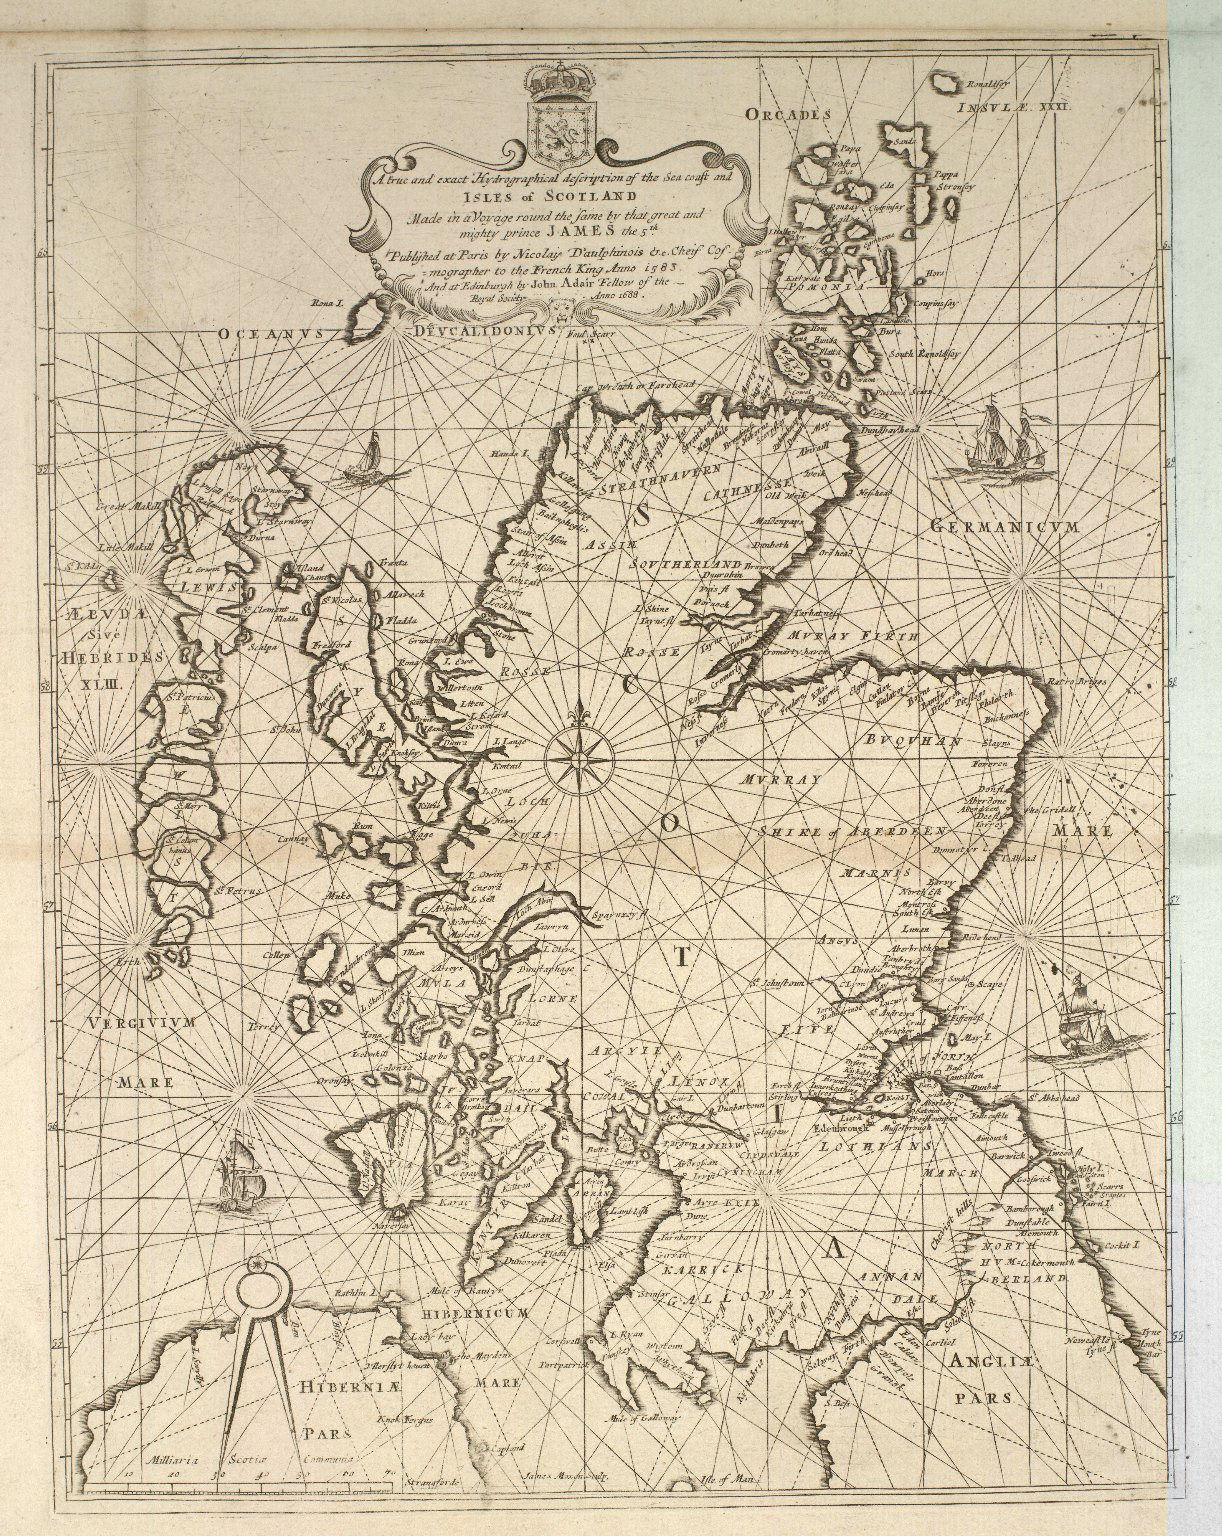 A true and exact Hydrographical description of the Sea coast and Isles of Scotland made in Voyage round the same by that great and mighty James the 5th. [1 of 1]